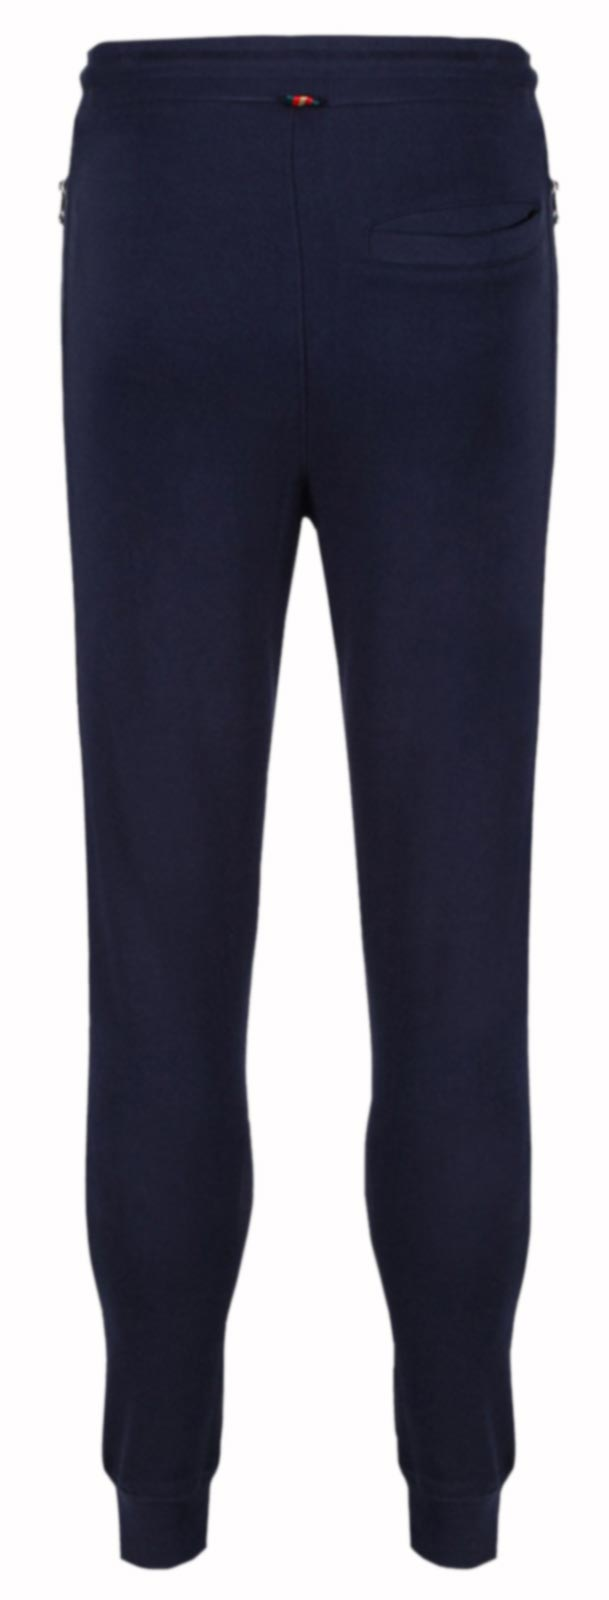 Luke 1977 Rome 2 Jogger Bottoms Navy